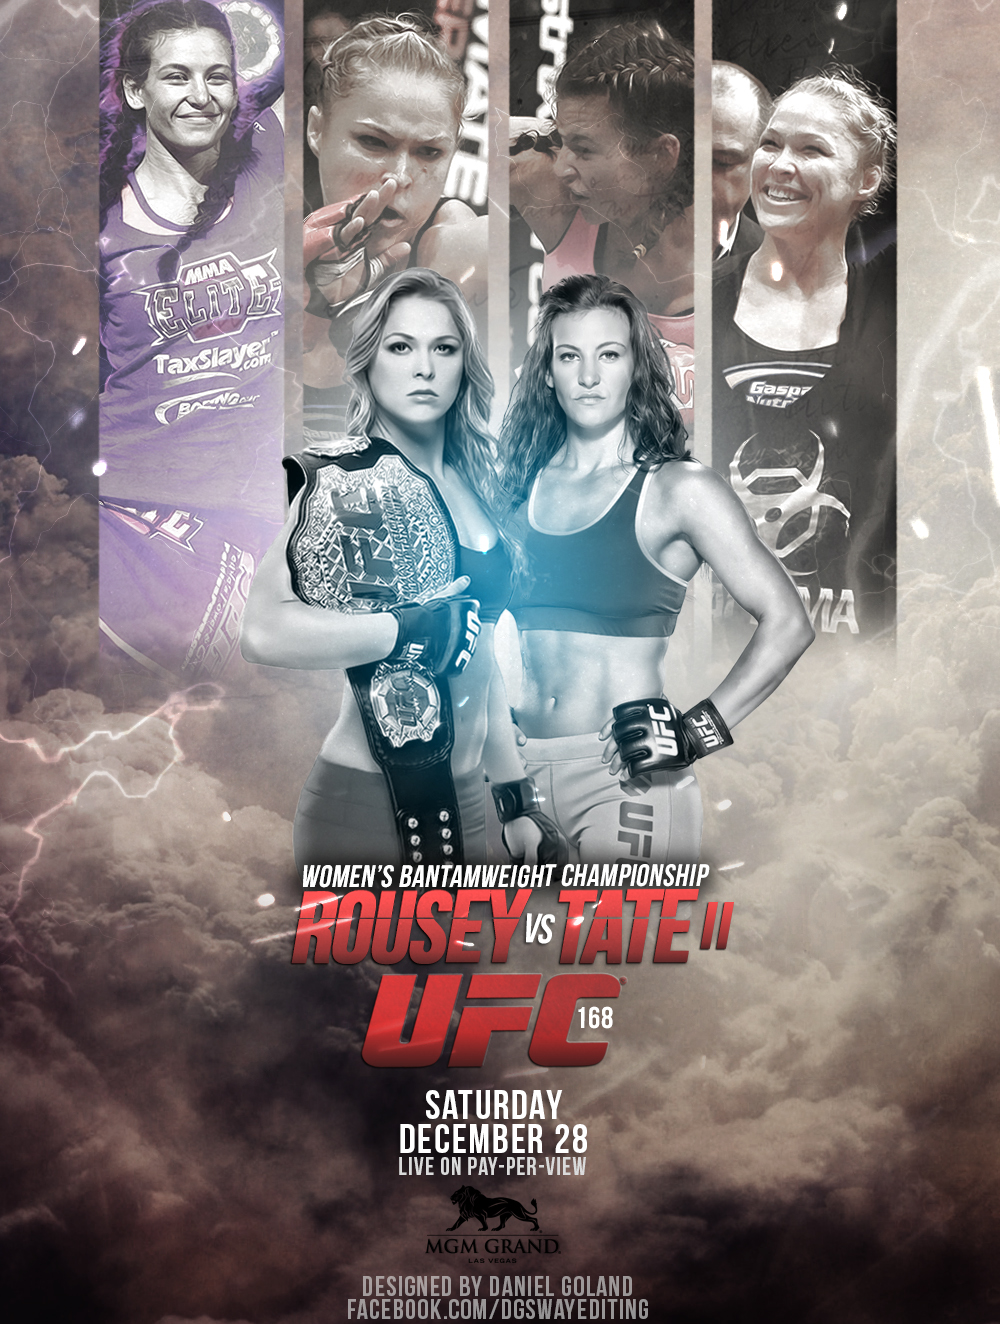 Ufc 168 Fight Poster UFC 168 POSTER ROUSEY ...